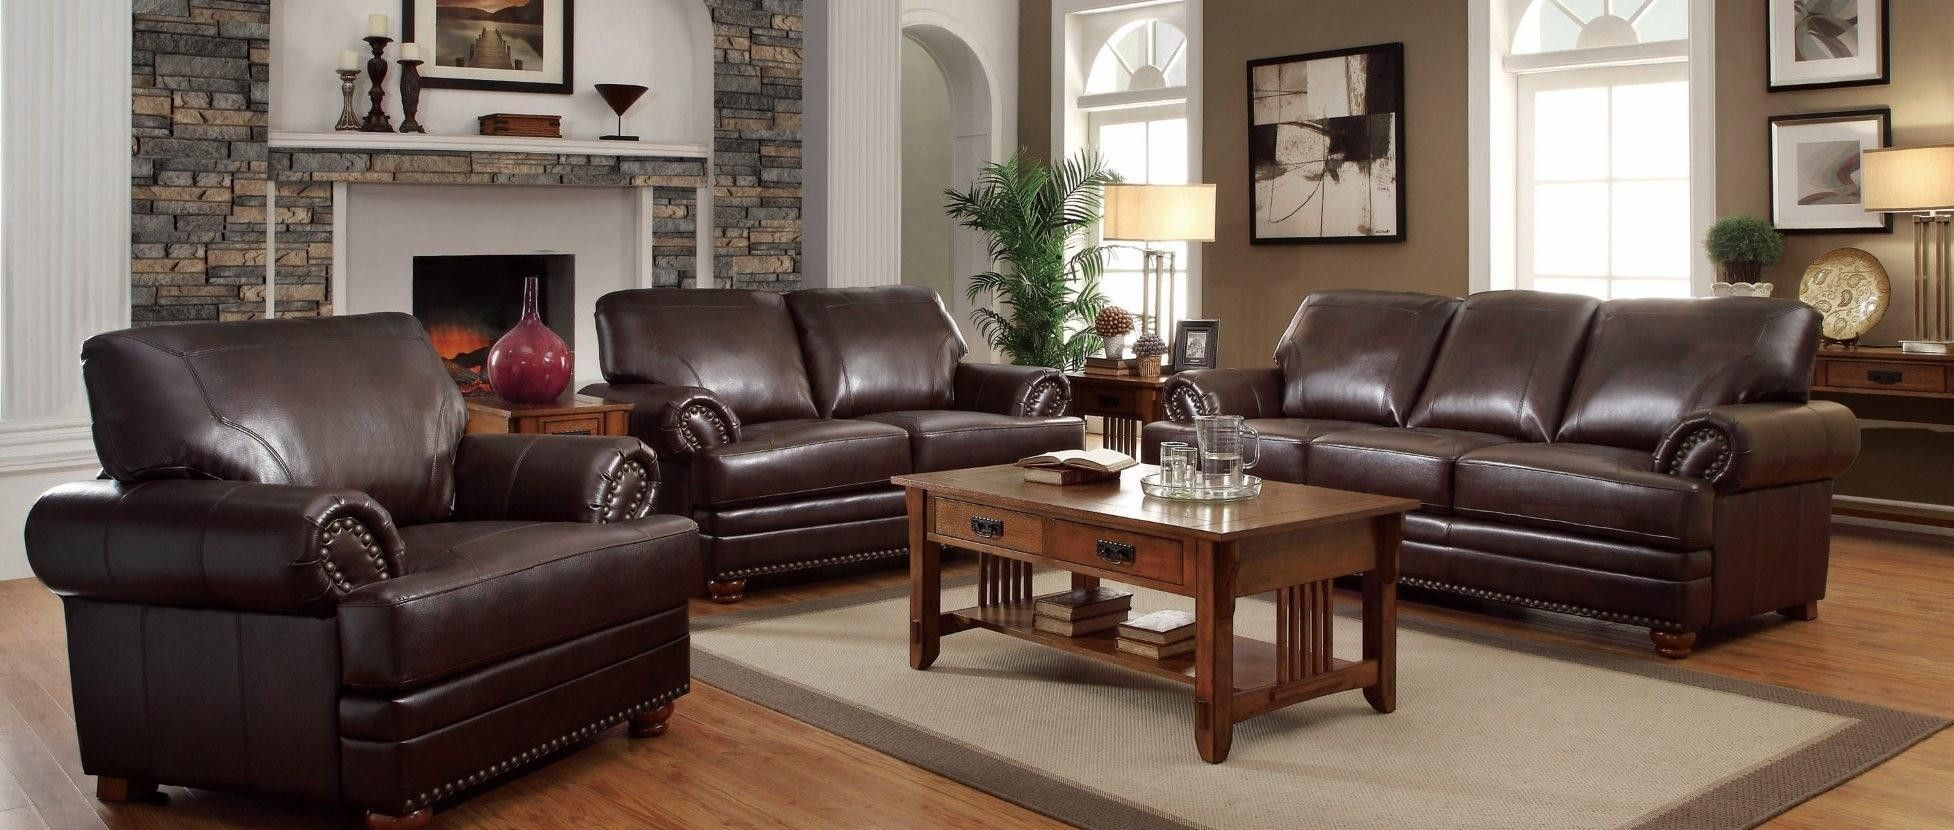 Leather Furniture Vancouver Leather Furniture Repair Services Vancouver Burnaby